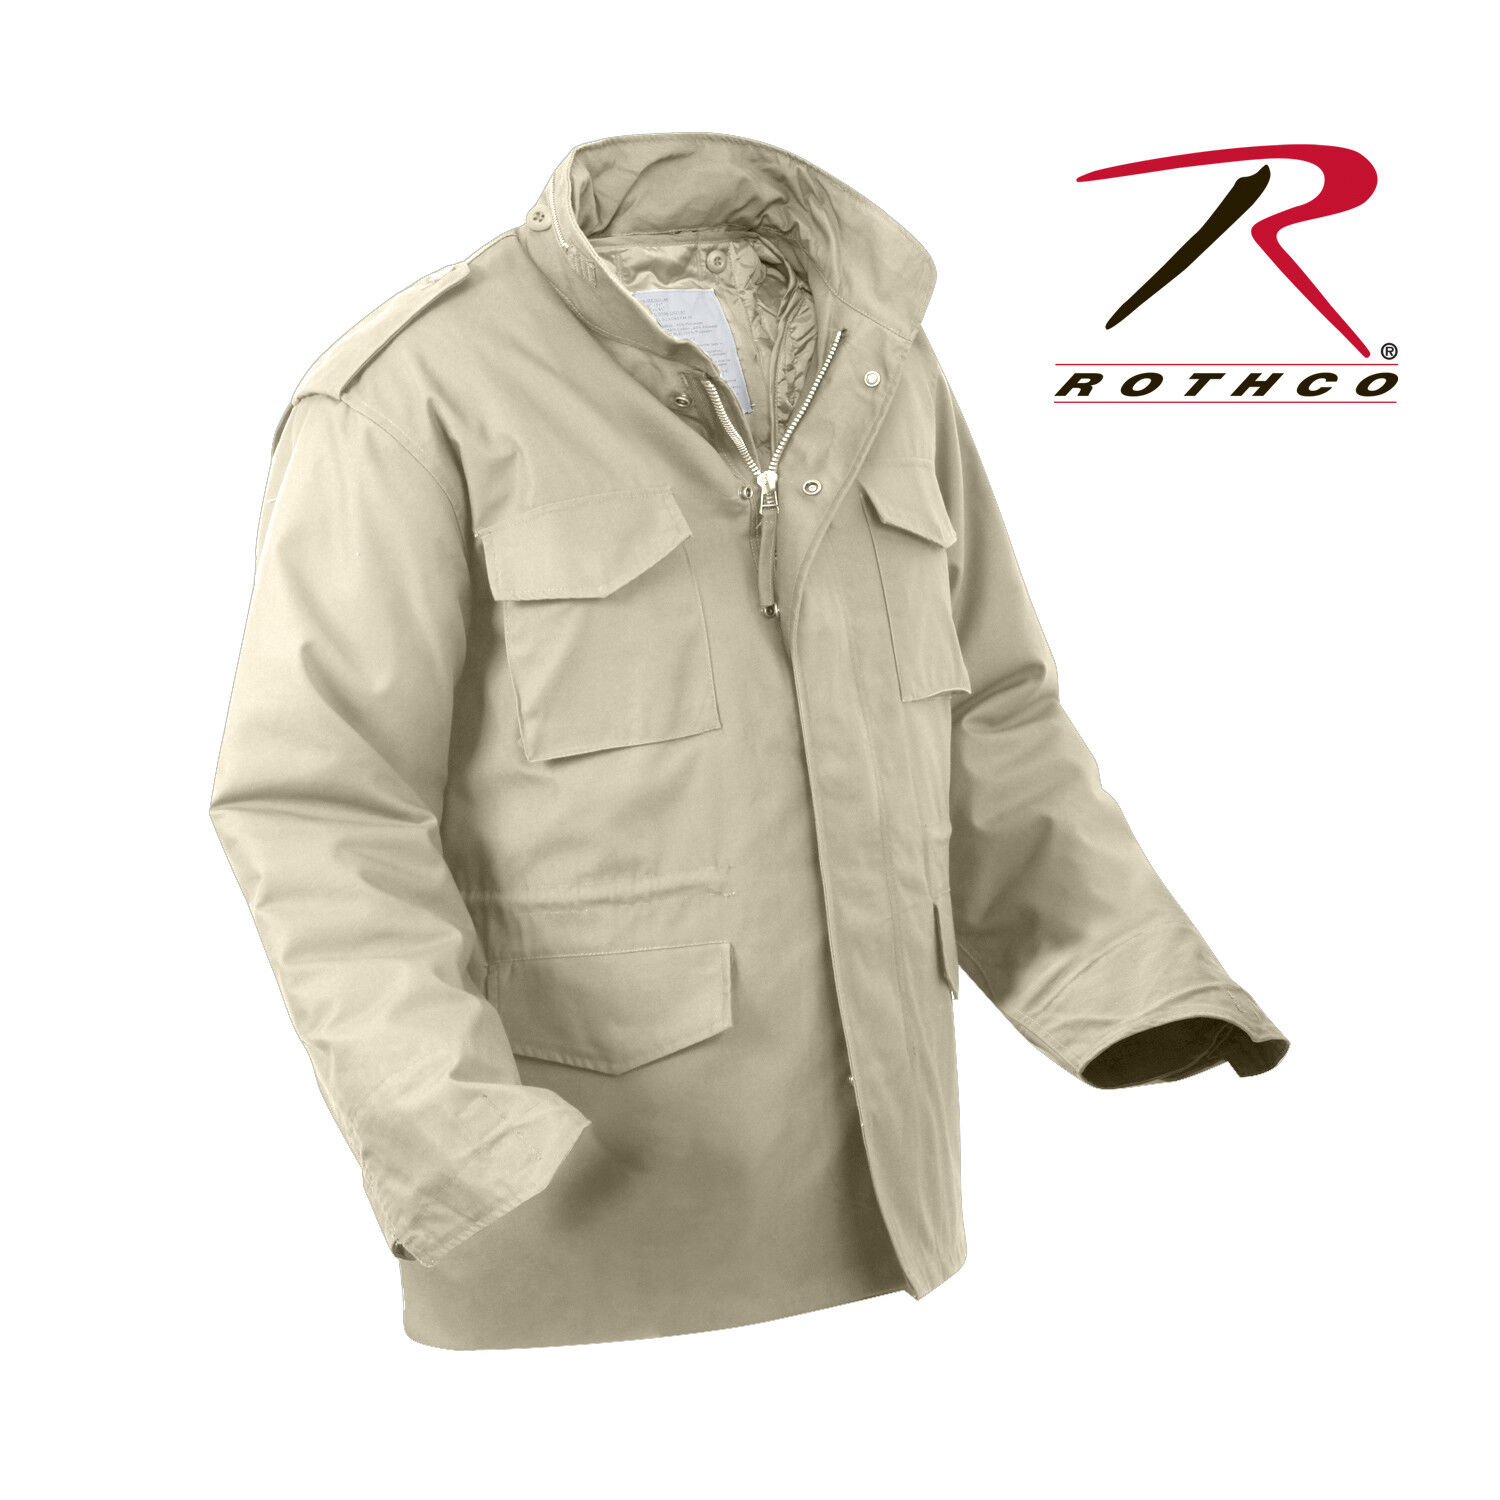 Rothco M65 Field Coat with removeable quilted liner KHAKI